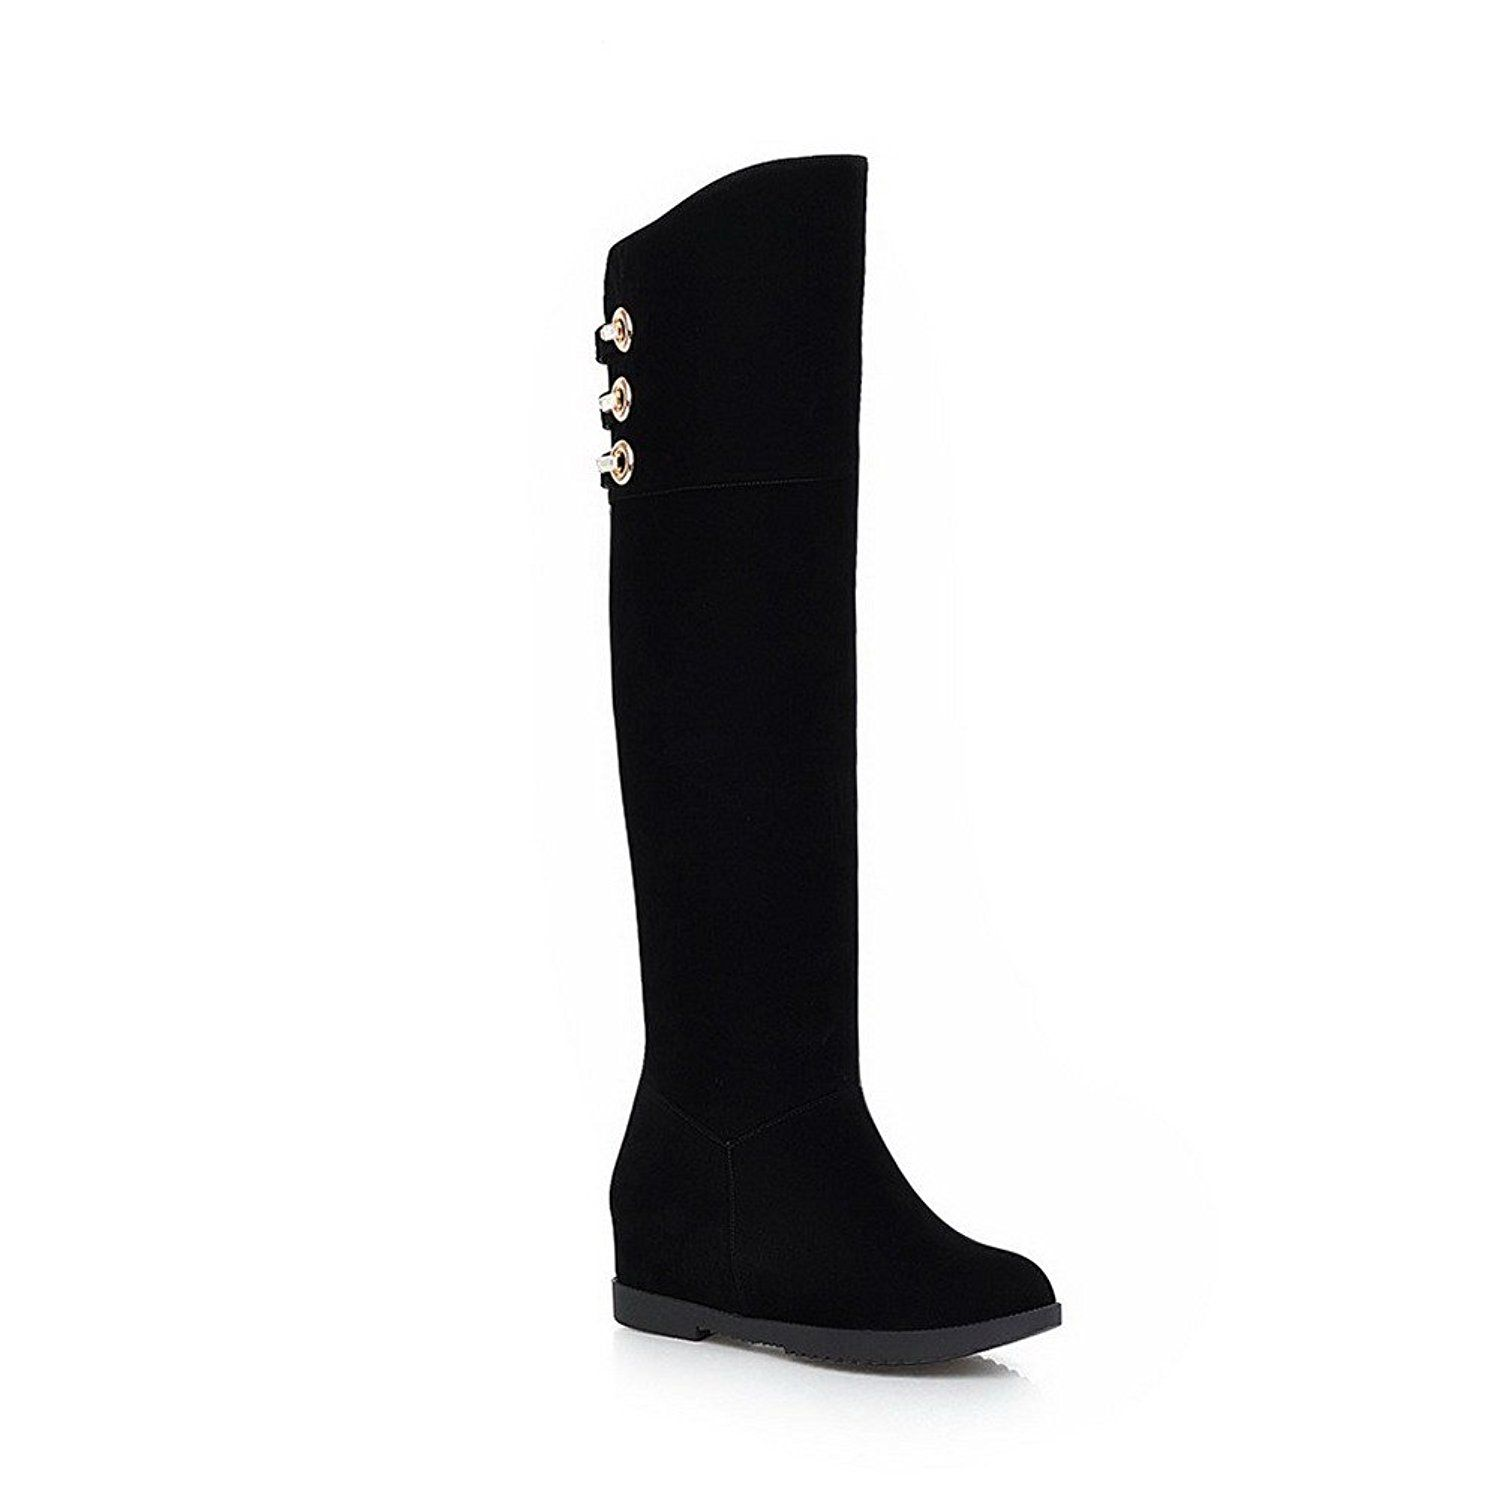 AmoonyFashion Women's Round-Toe Closed-Toe Kitten-Heels Boots with Metal Decoration and Platform * Details can be found by clicking on the image.